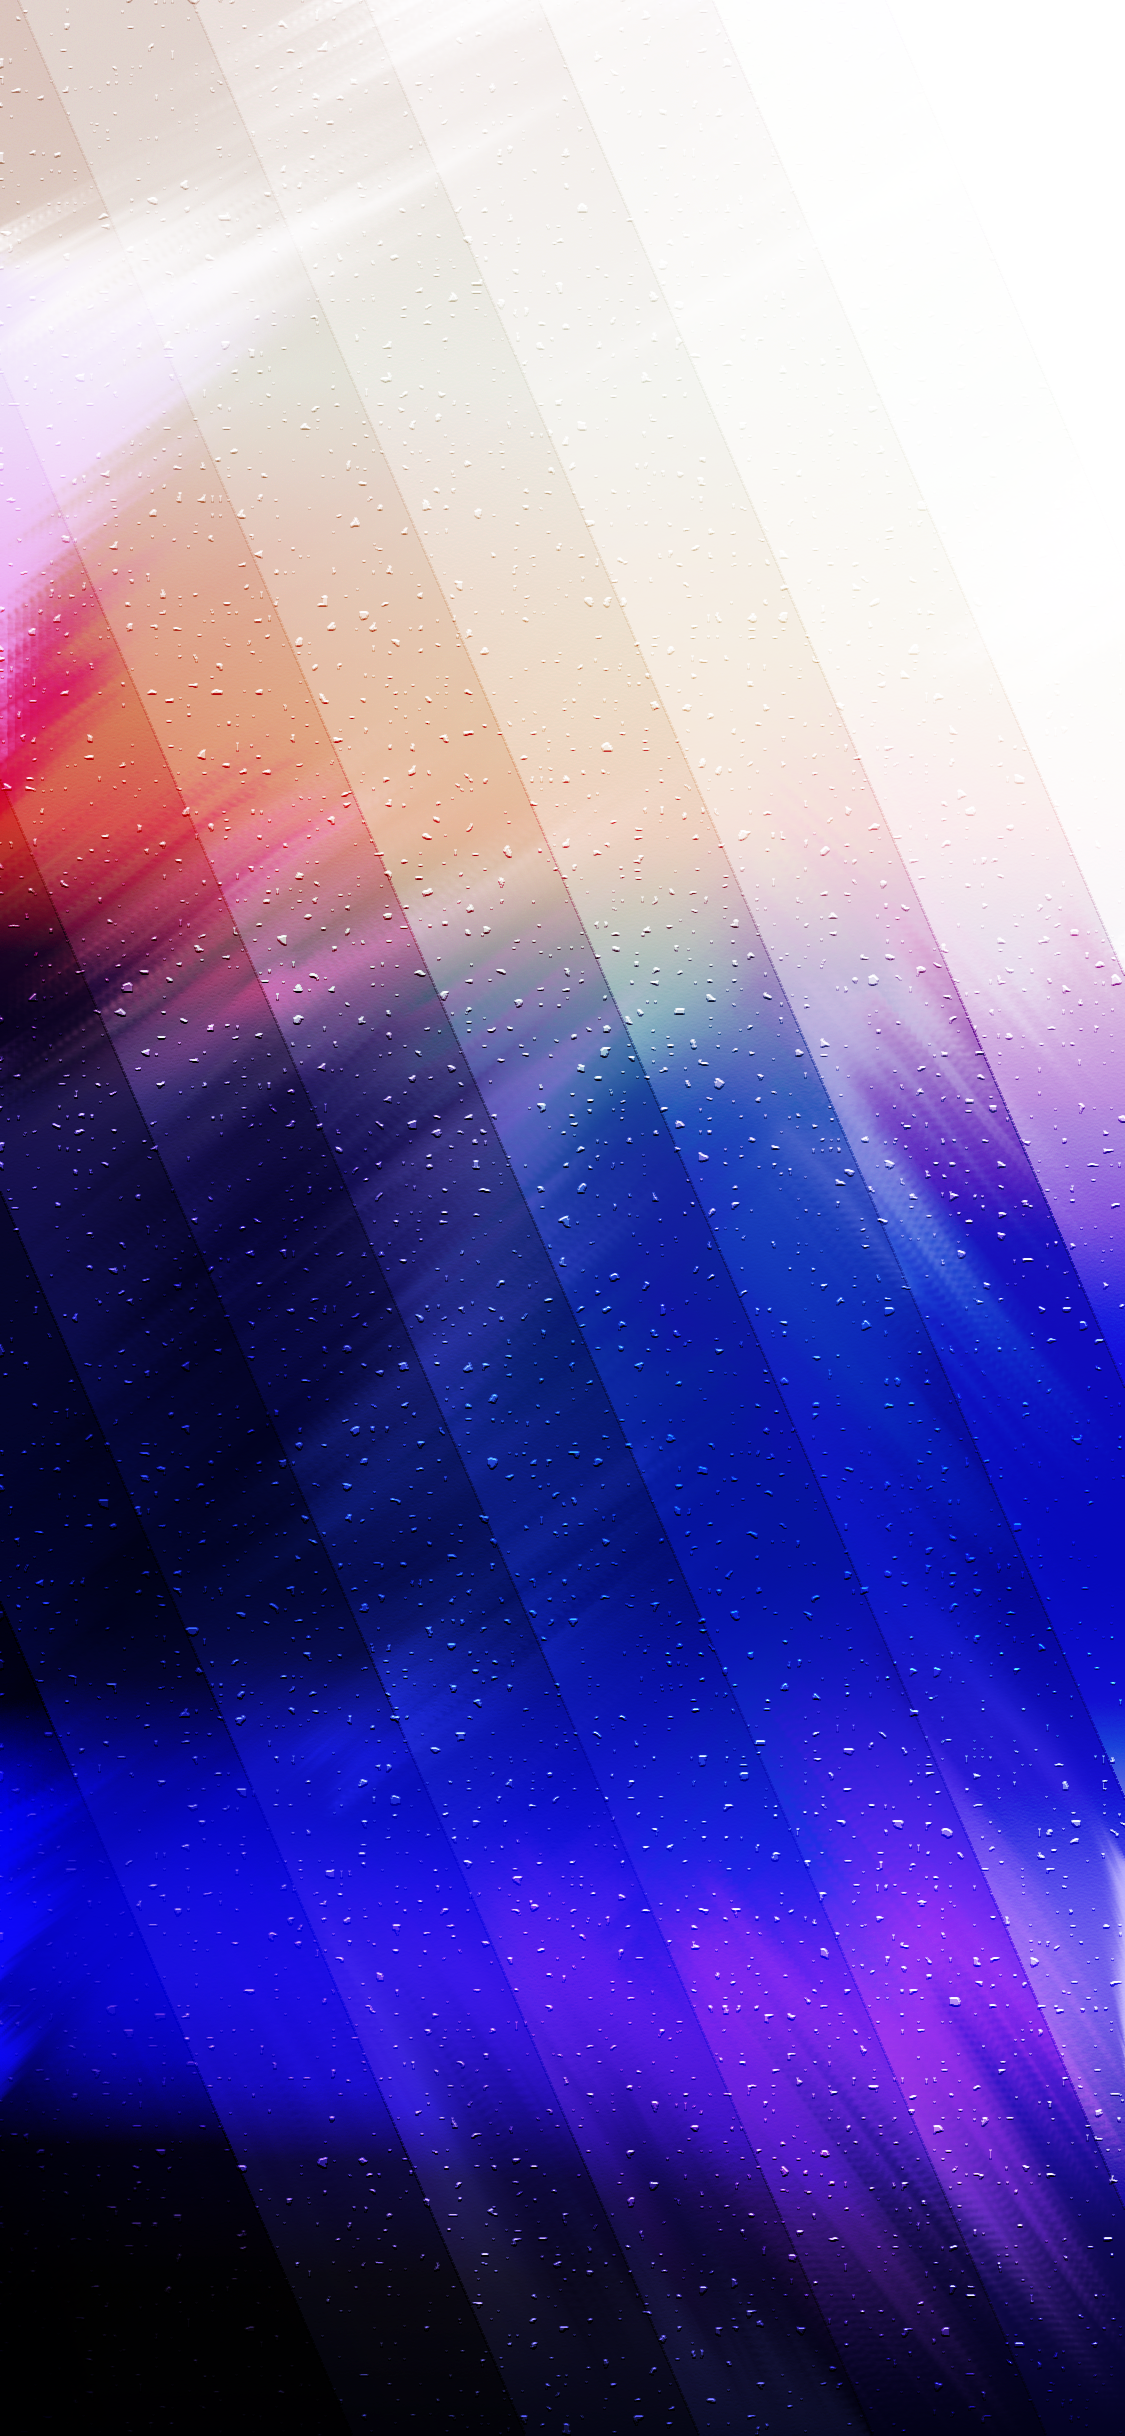 Wallpapers of the week: colorful geometry and bokeh